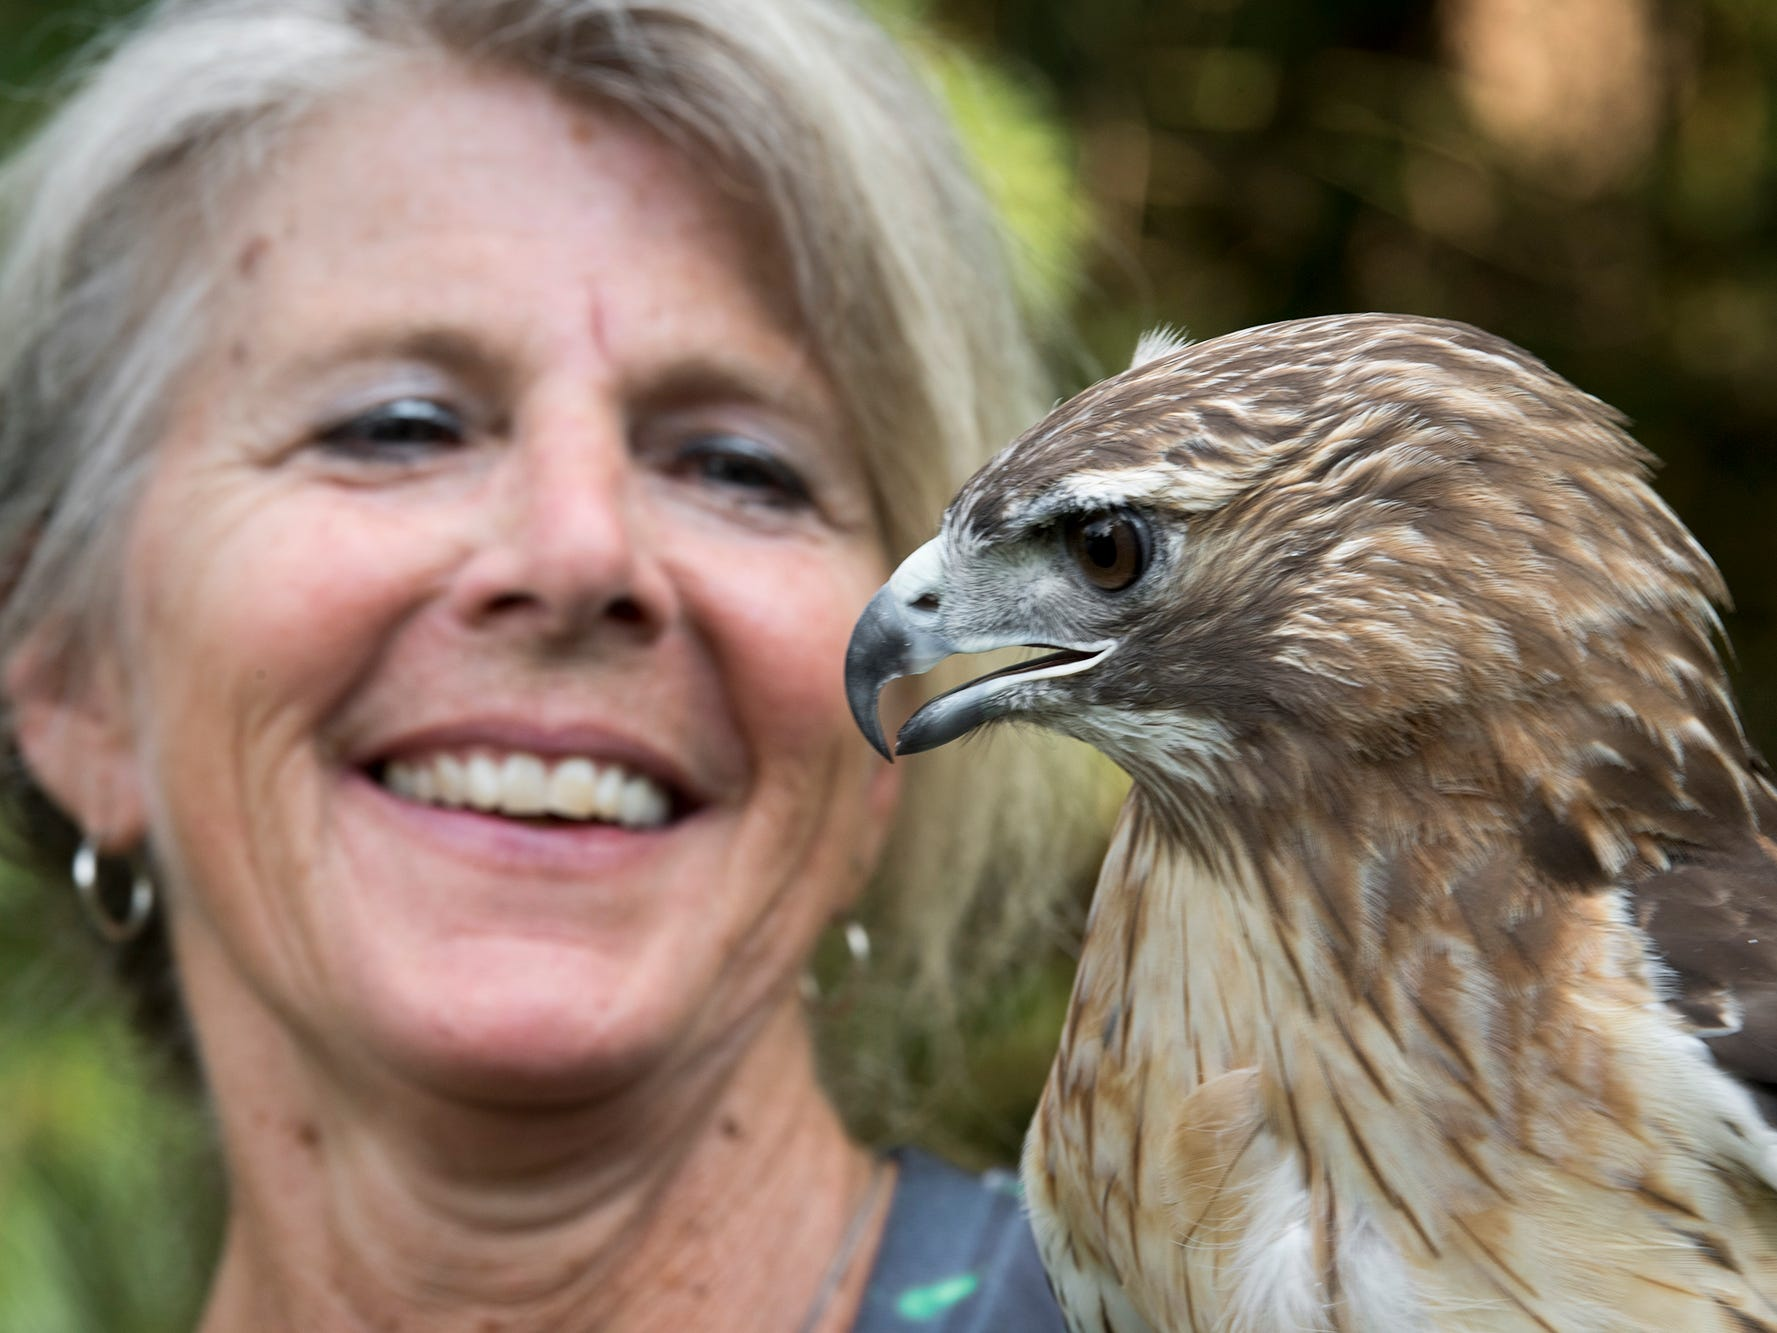 Mitzi Eaton with a Red-tailed Hawk, an educational bird because it would not survive if was released into the wild on July 18, 2018. For 30 years, Eaton, has been York County's lifeline for injured and ill birds of prey at her home in Lower Windsor Township.